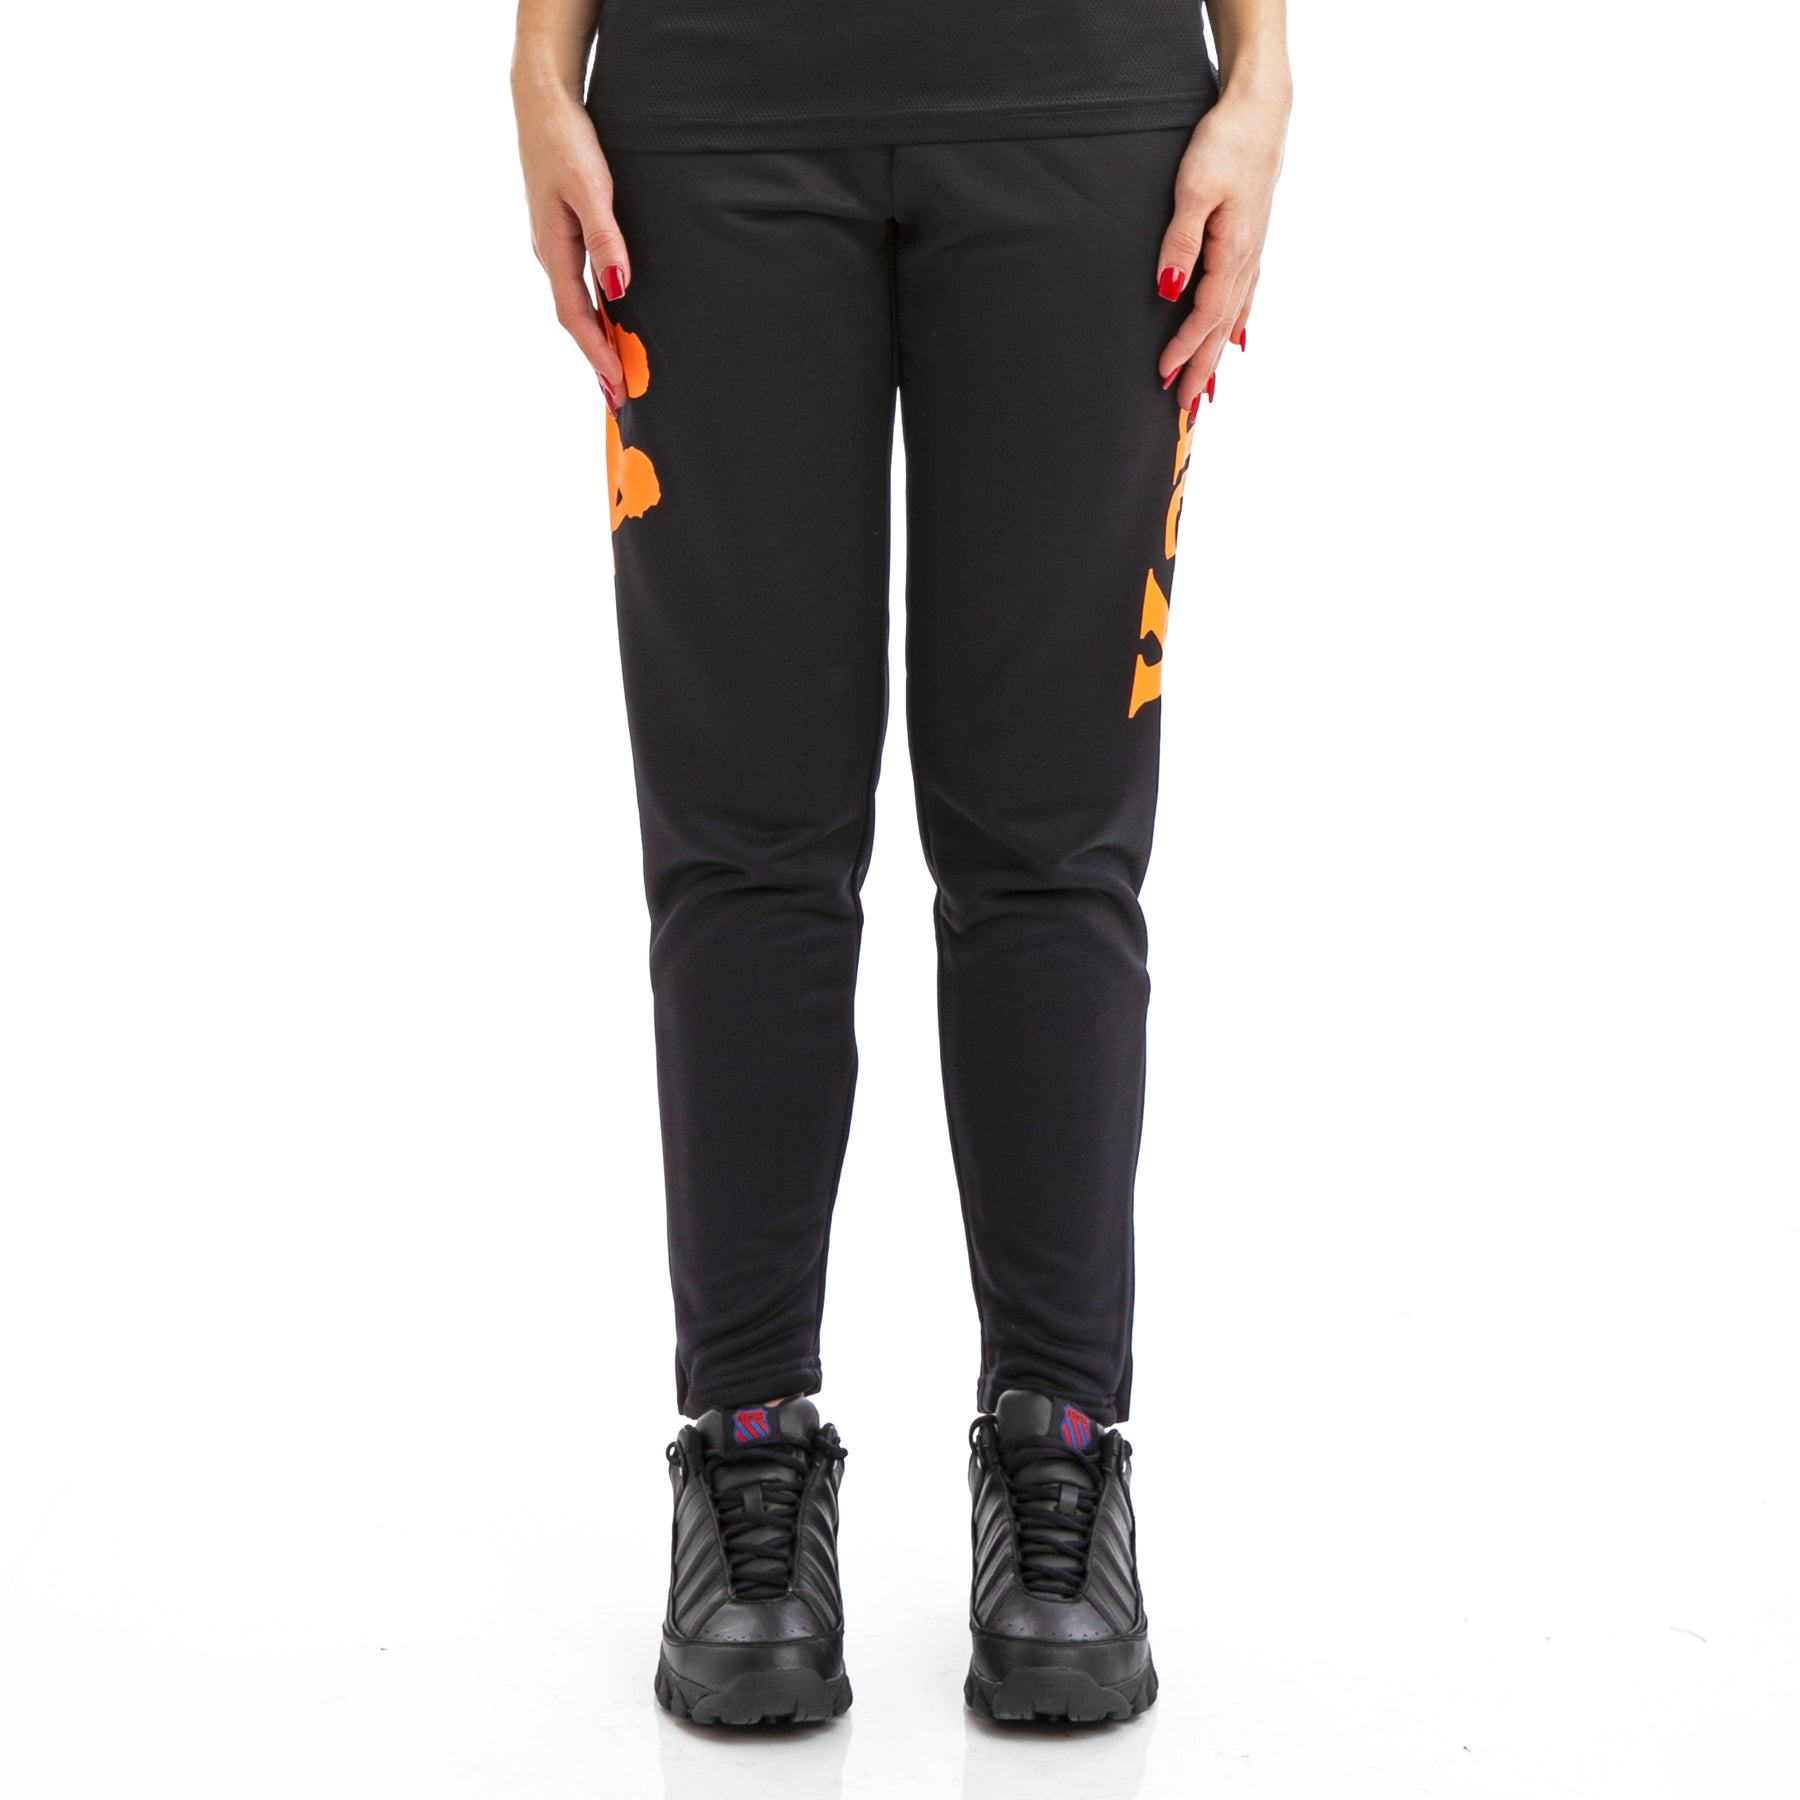 d8a23cbe Kappa Kalcio Bigily Black Orange Trackpants – Kappa USA